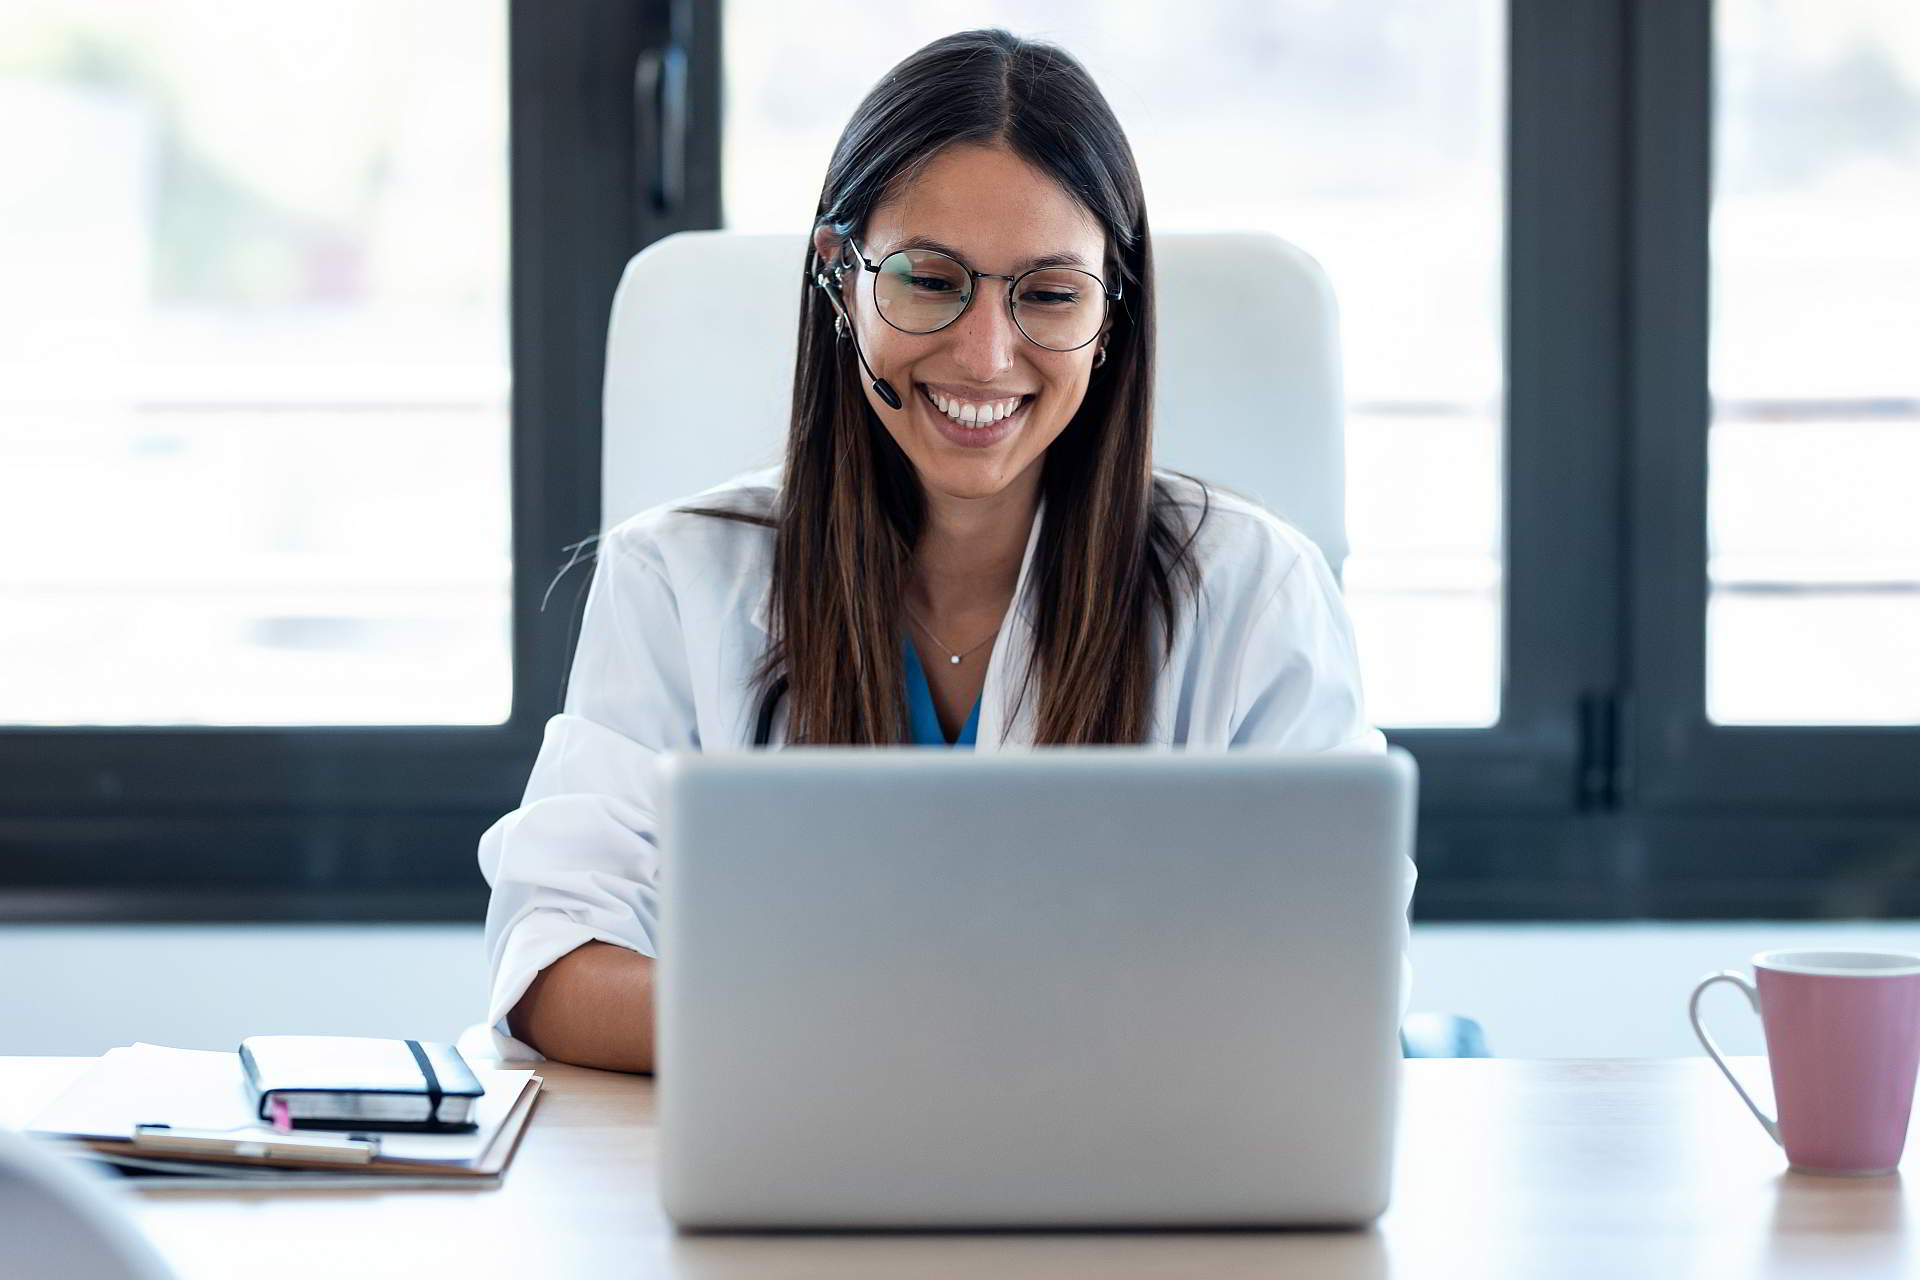 Rely on the leading telehealth compliance expert